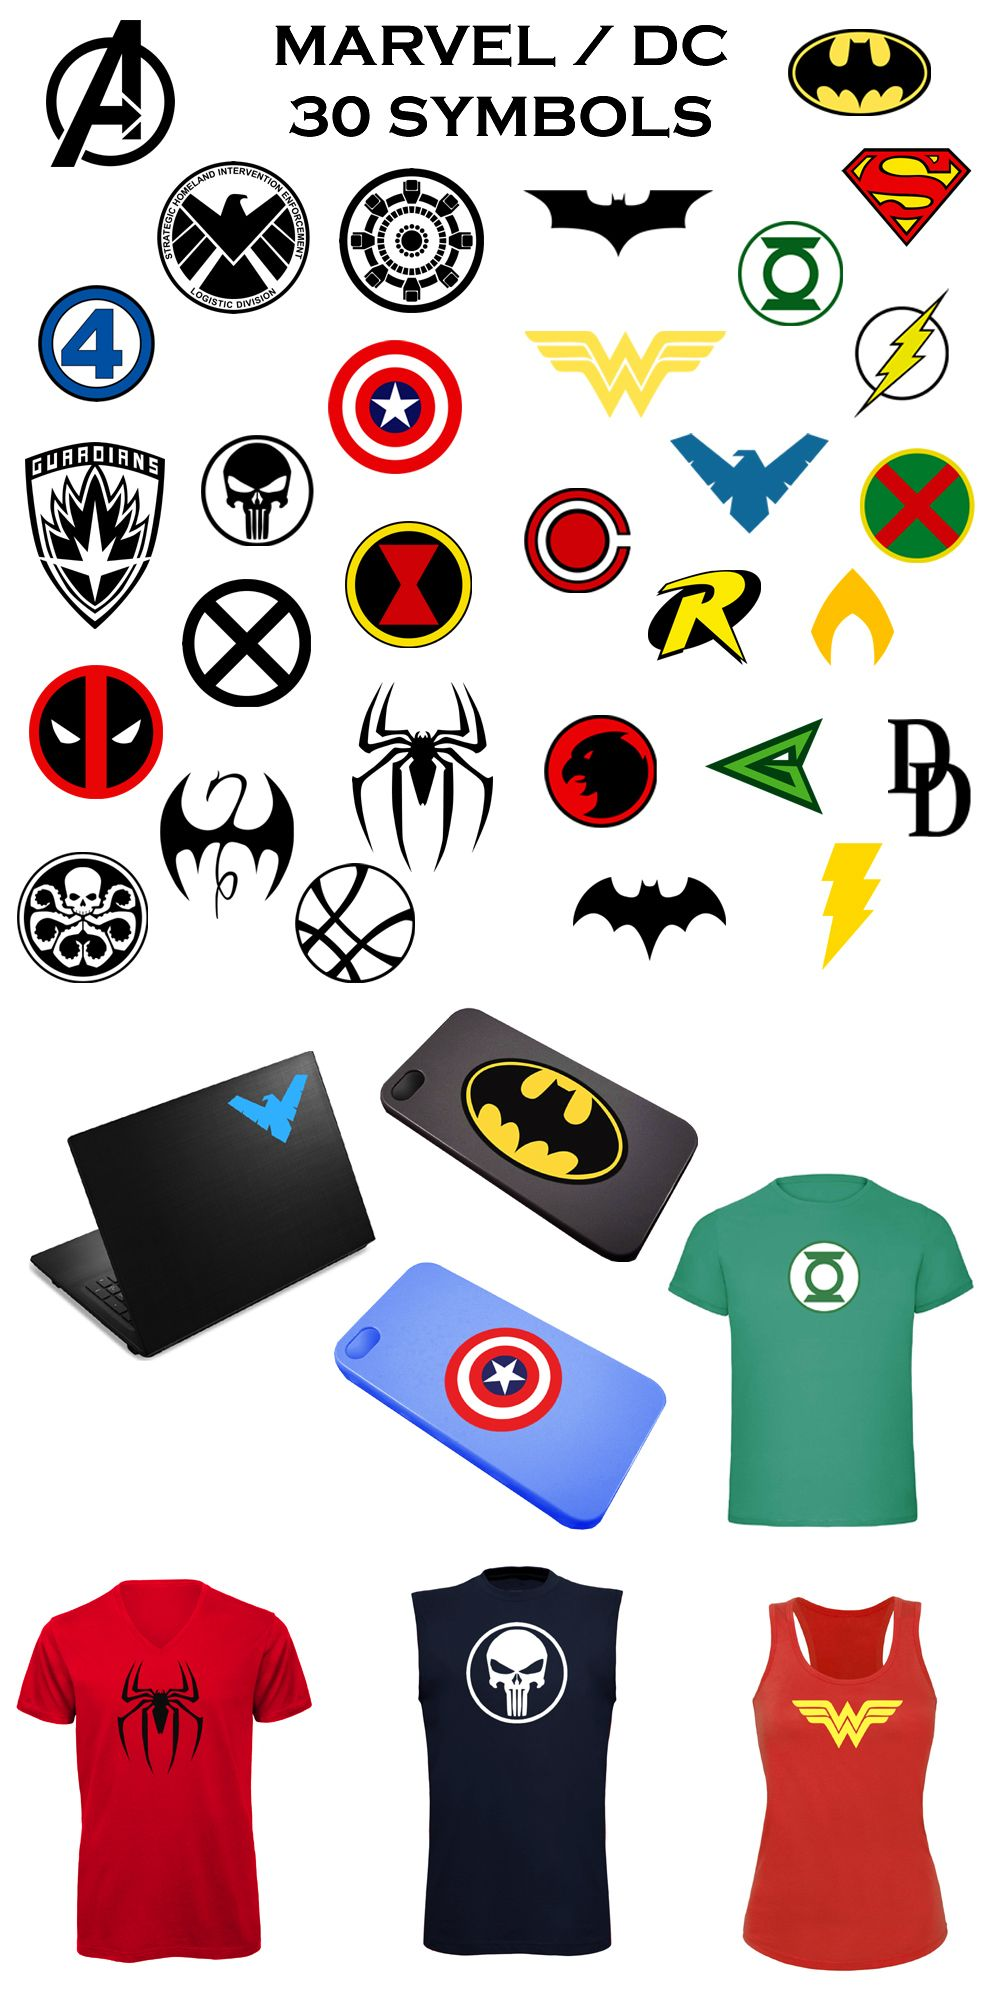 Marvel and dc symbols for your home decorations clothes cosplay